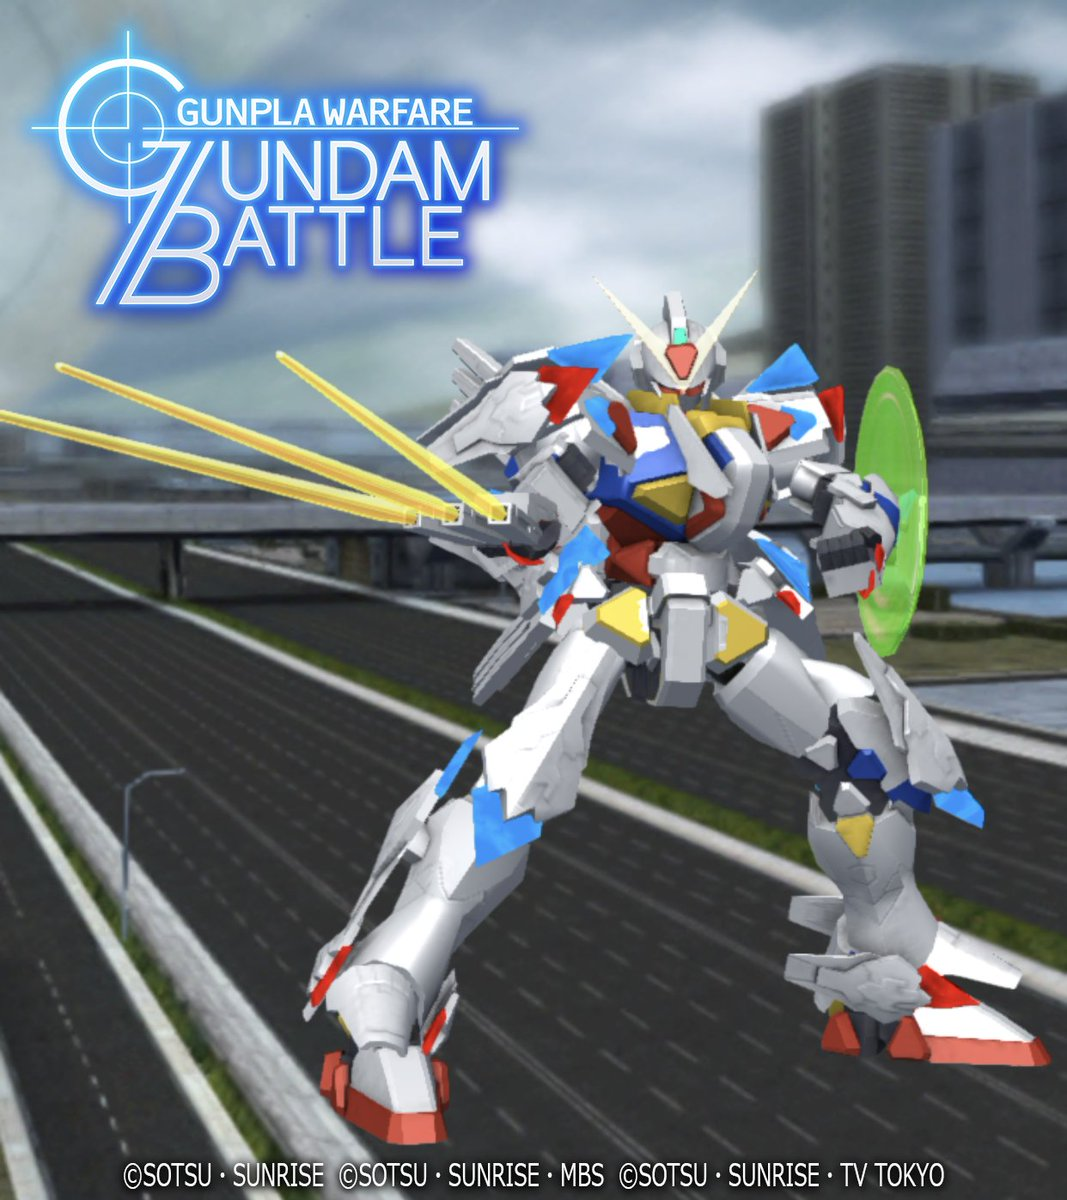 """GUNDAM BATTLE: GUNPLA WARFARE on Twitter: """"The Beginning 30 Gundam has come  to the Pick Up Capsules. This creative Gunpla can bring some fantastic new  options to their roster.… https://t.co/Nm7XgaJvkE"""""""